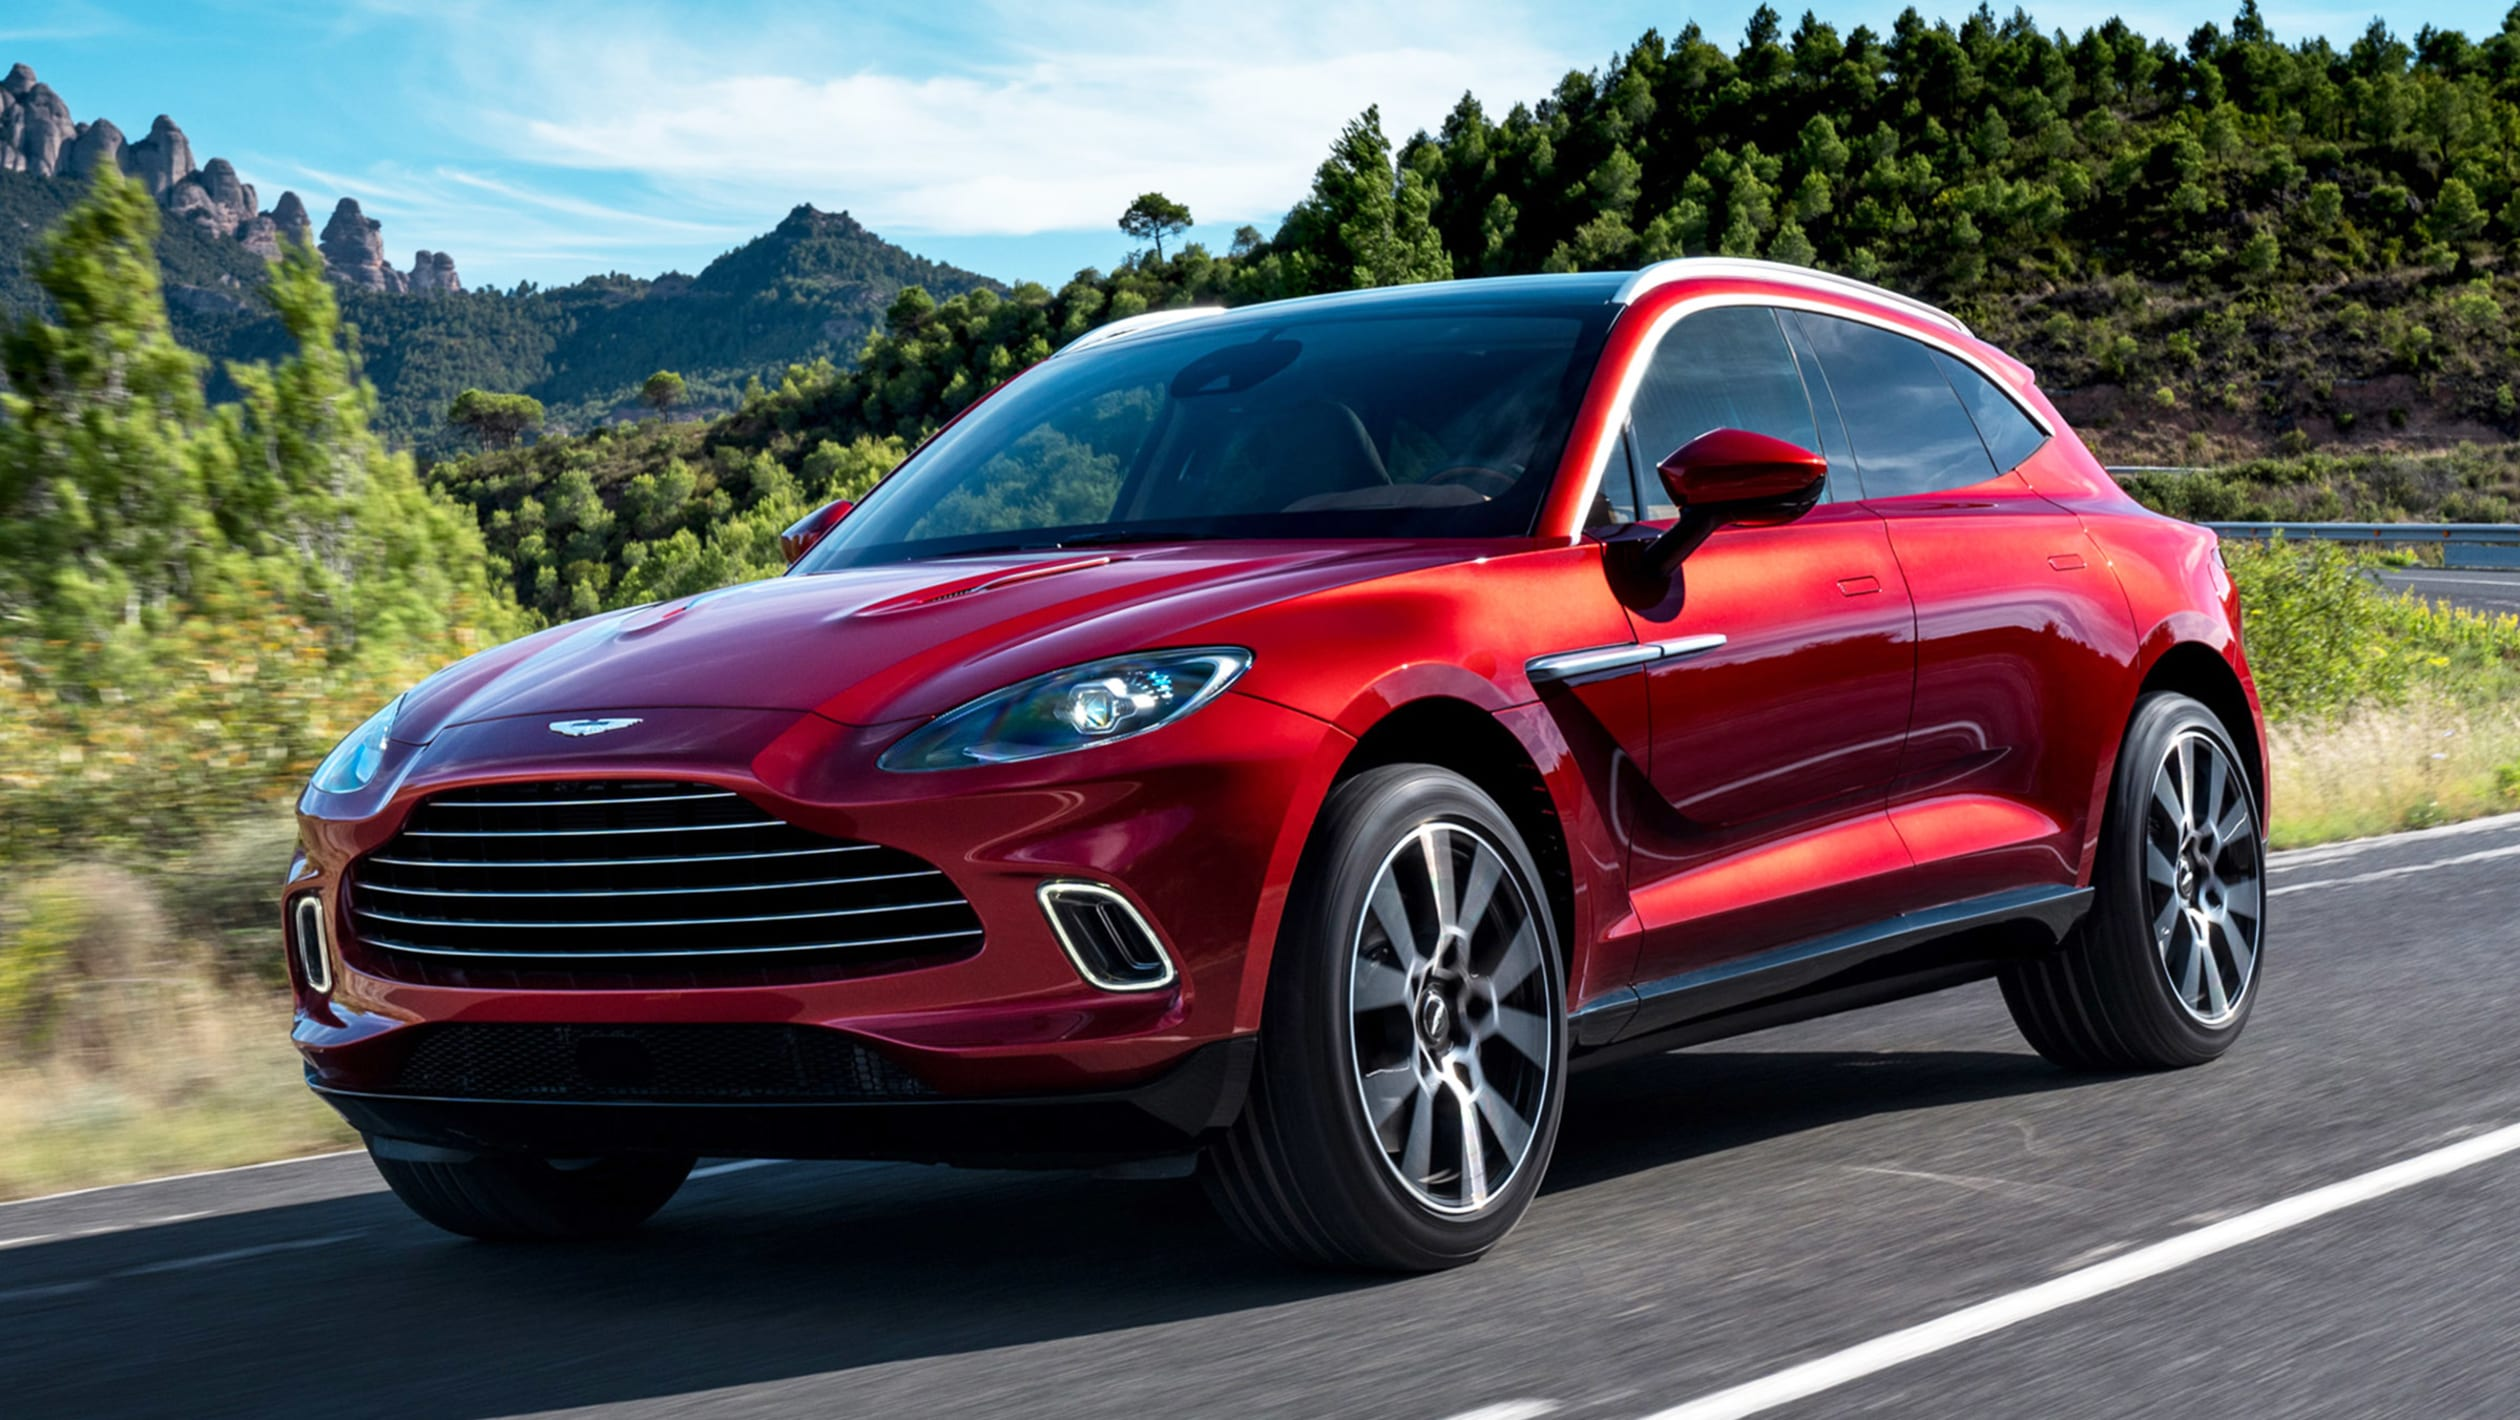 Aston Martin DBX model range to grow from 2021 | Auto Express